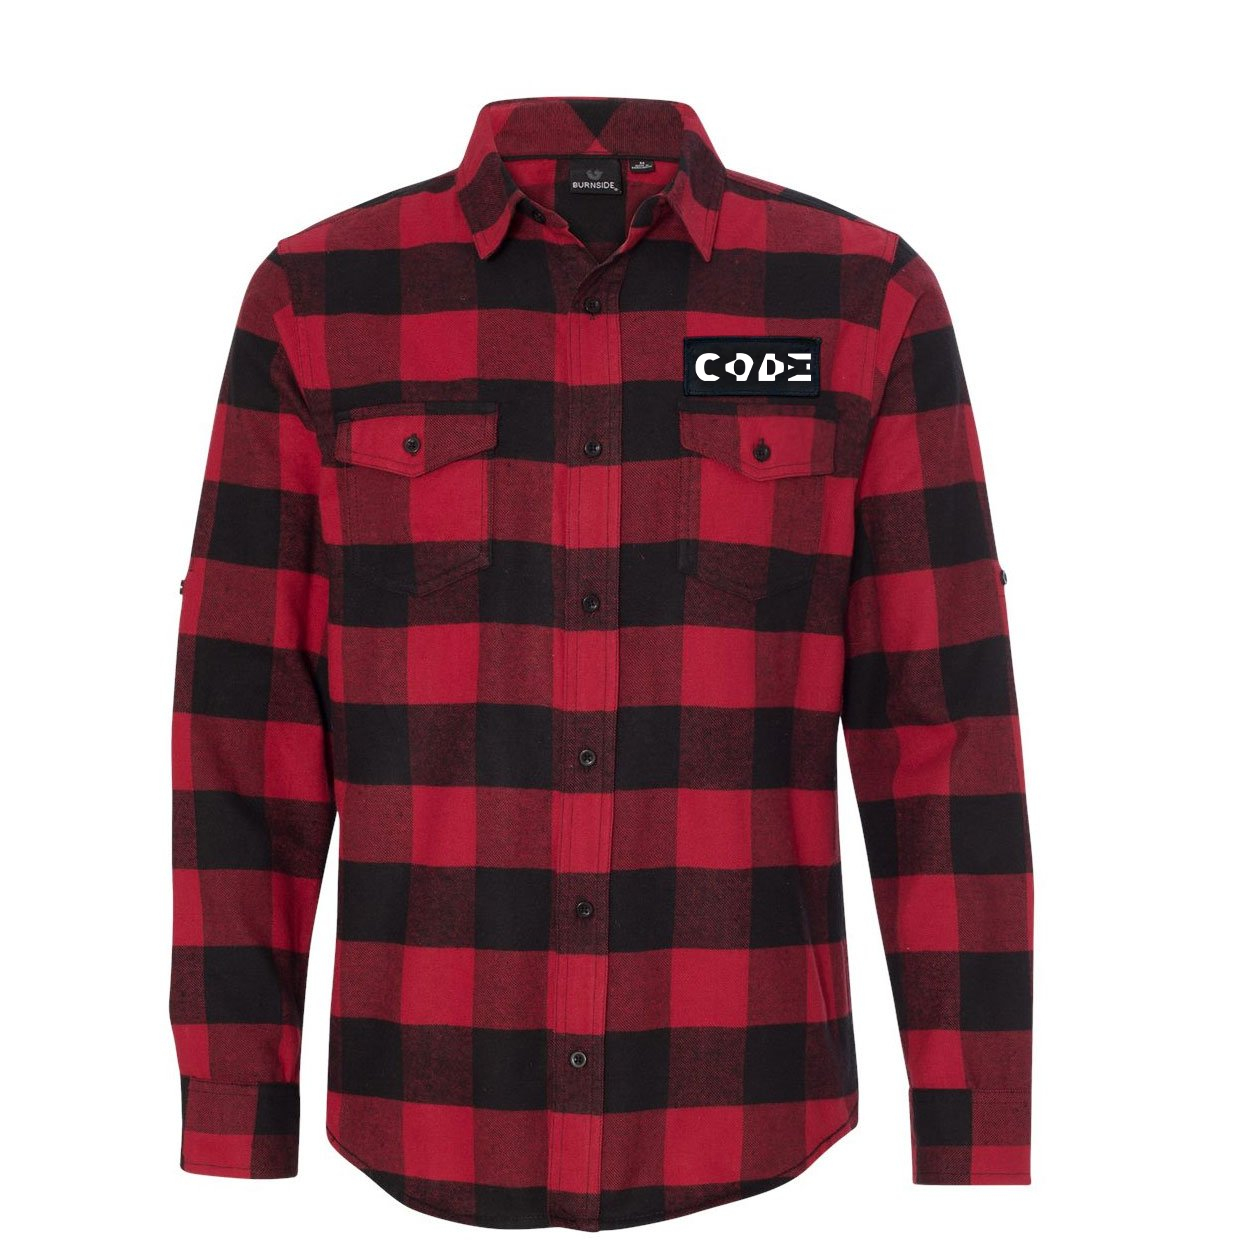 Code Tag Logo Classic Unisex Long Sleeve Woven Patch Flannel Shirt Red/Black Buffalo (White Logo)